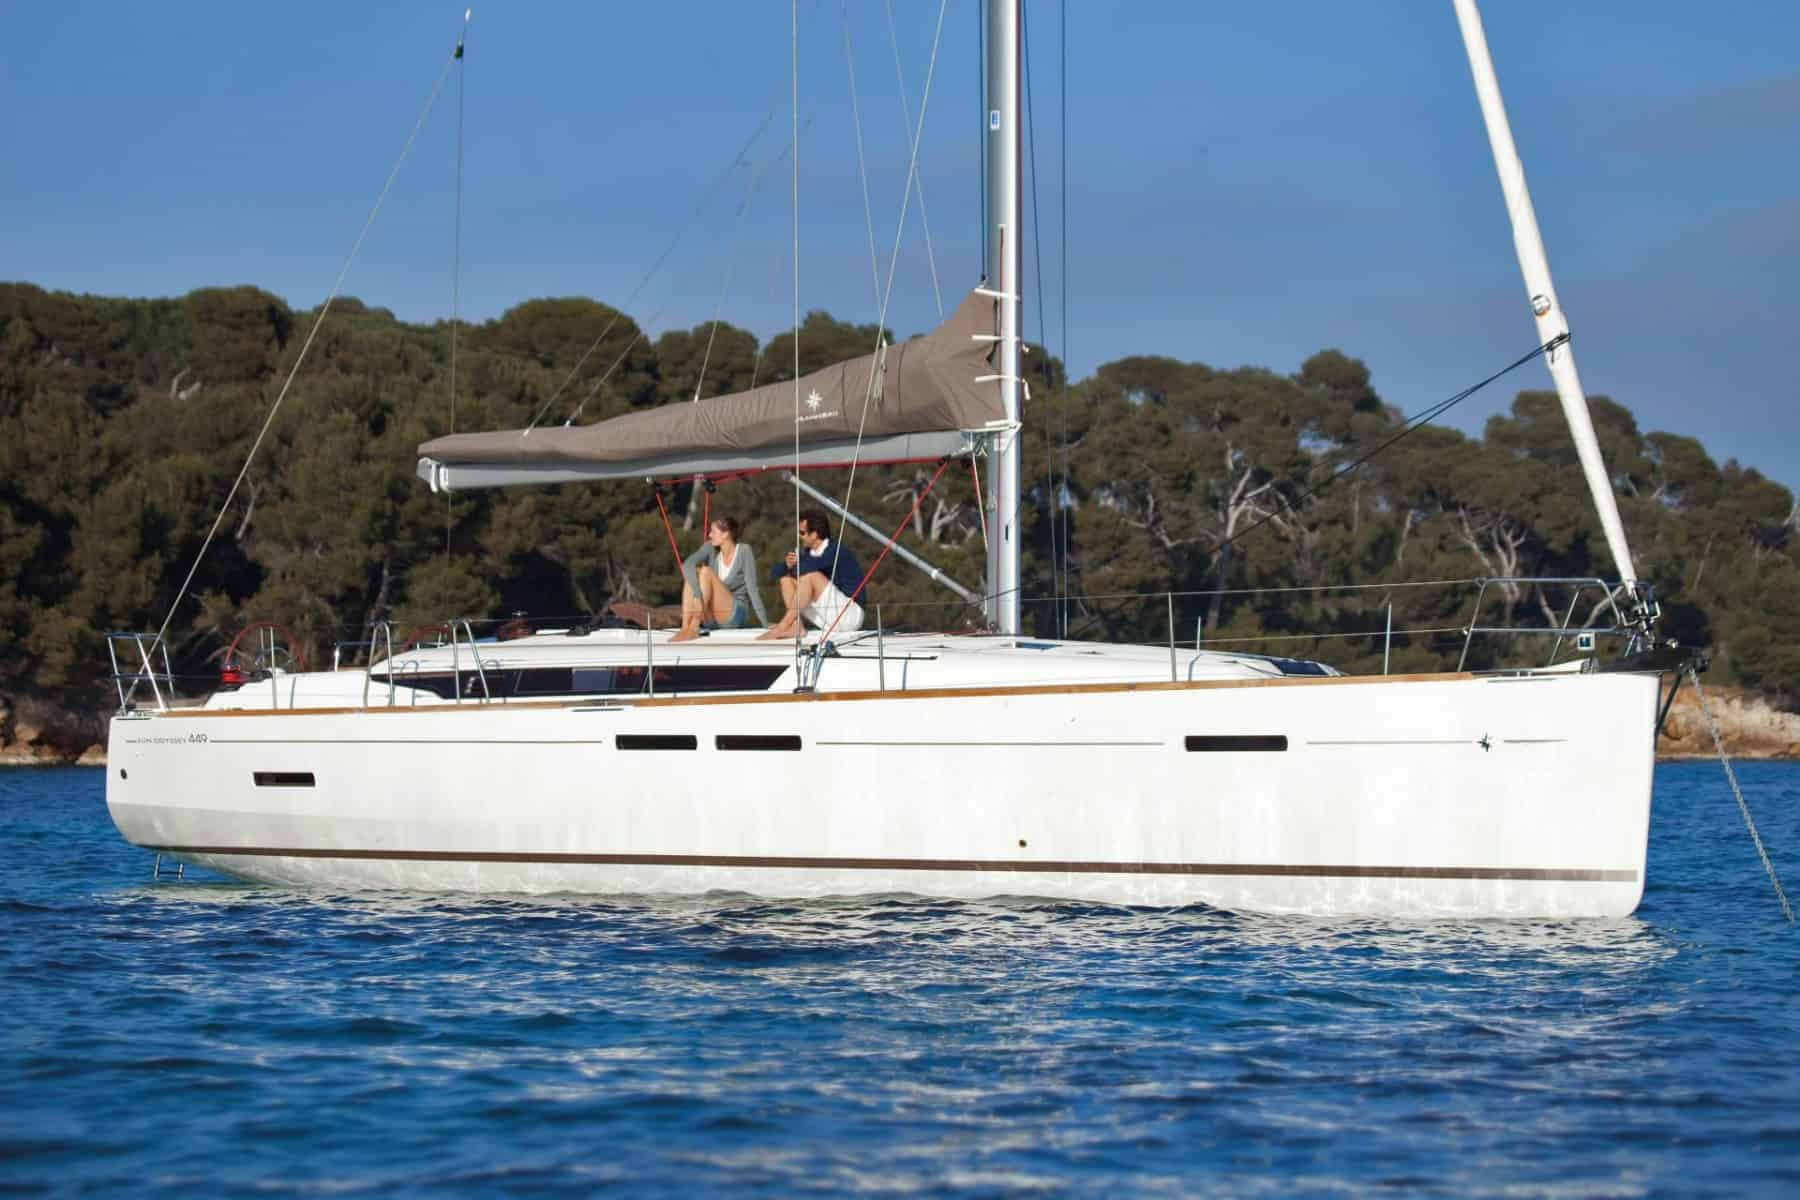 Floating Jeanneau Sun Odyssey 449 with a man and a woman relaxing on the deck